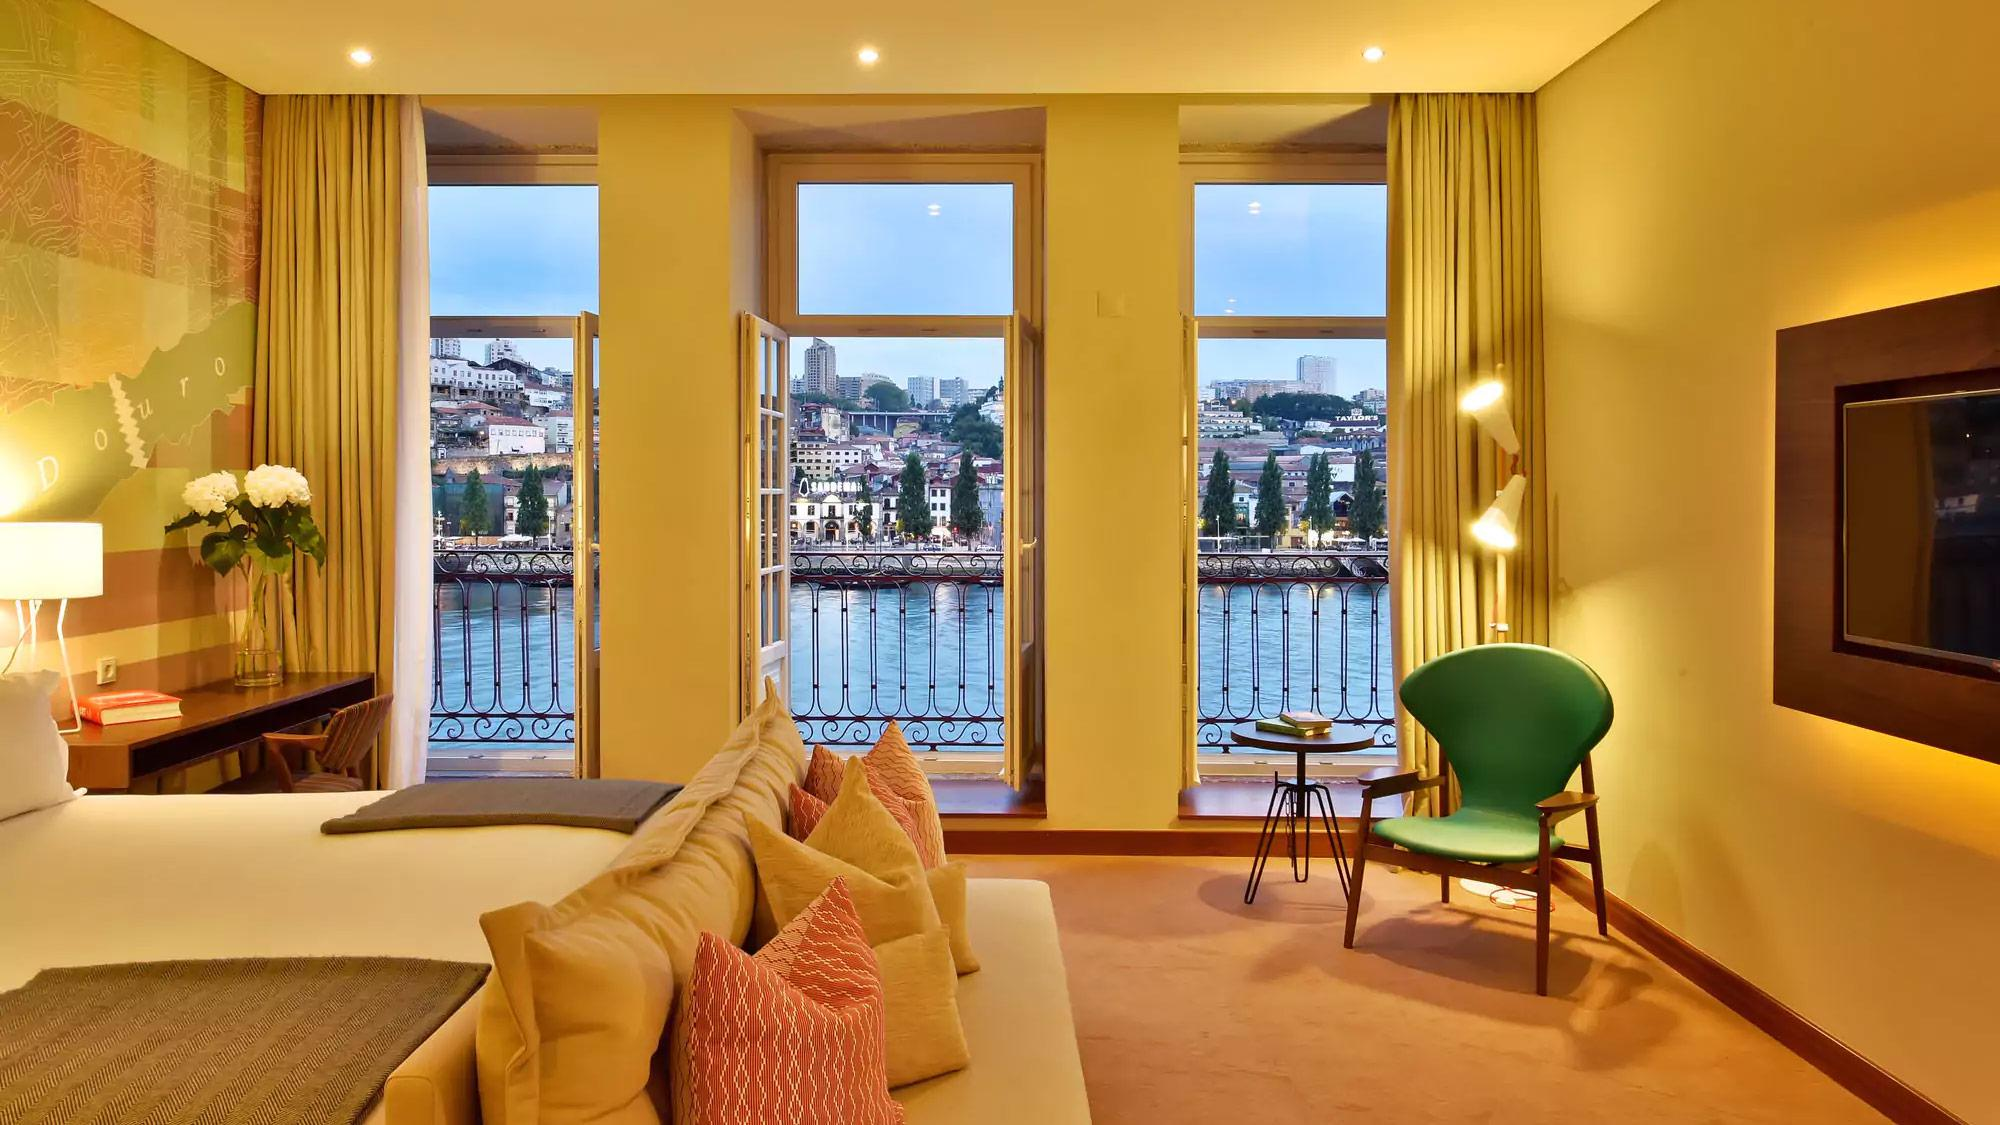 City Guide: Discover The Best From Porto city guide City Guide: Discover The Best From Porto pestana vintage porto hotel and world heritage site club room